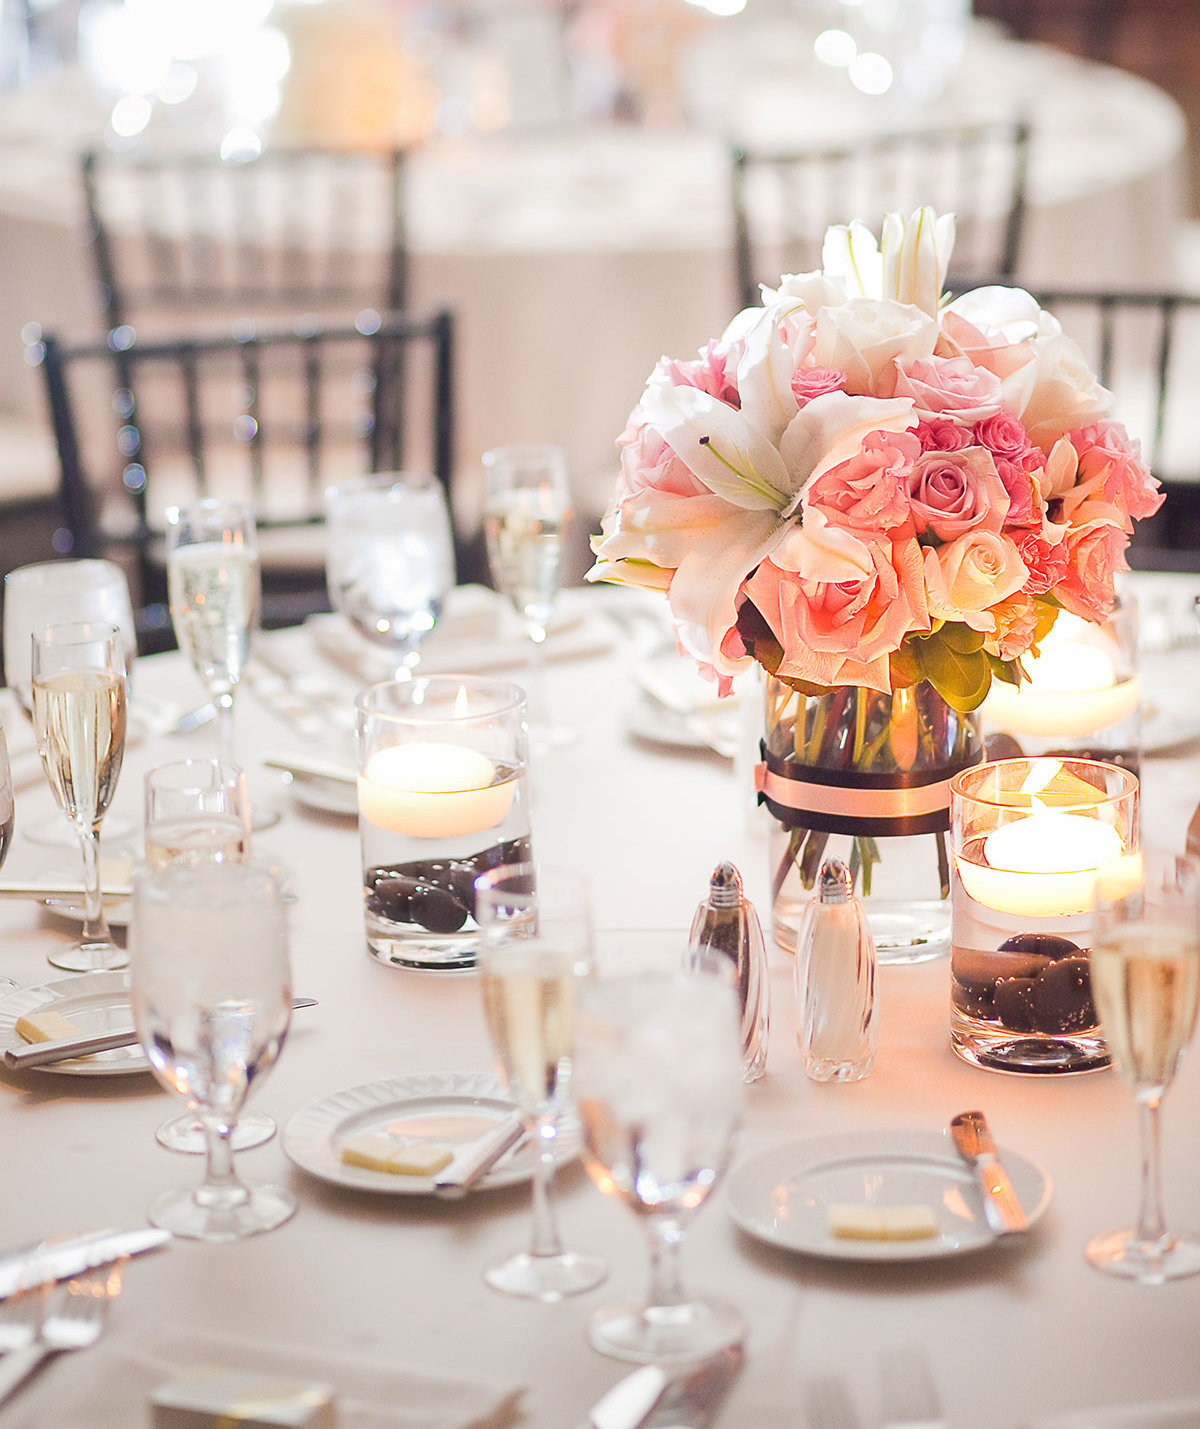 This Is the Biggest Pet Peeve for Wedding Guests